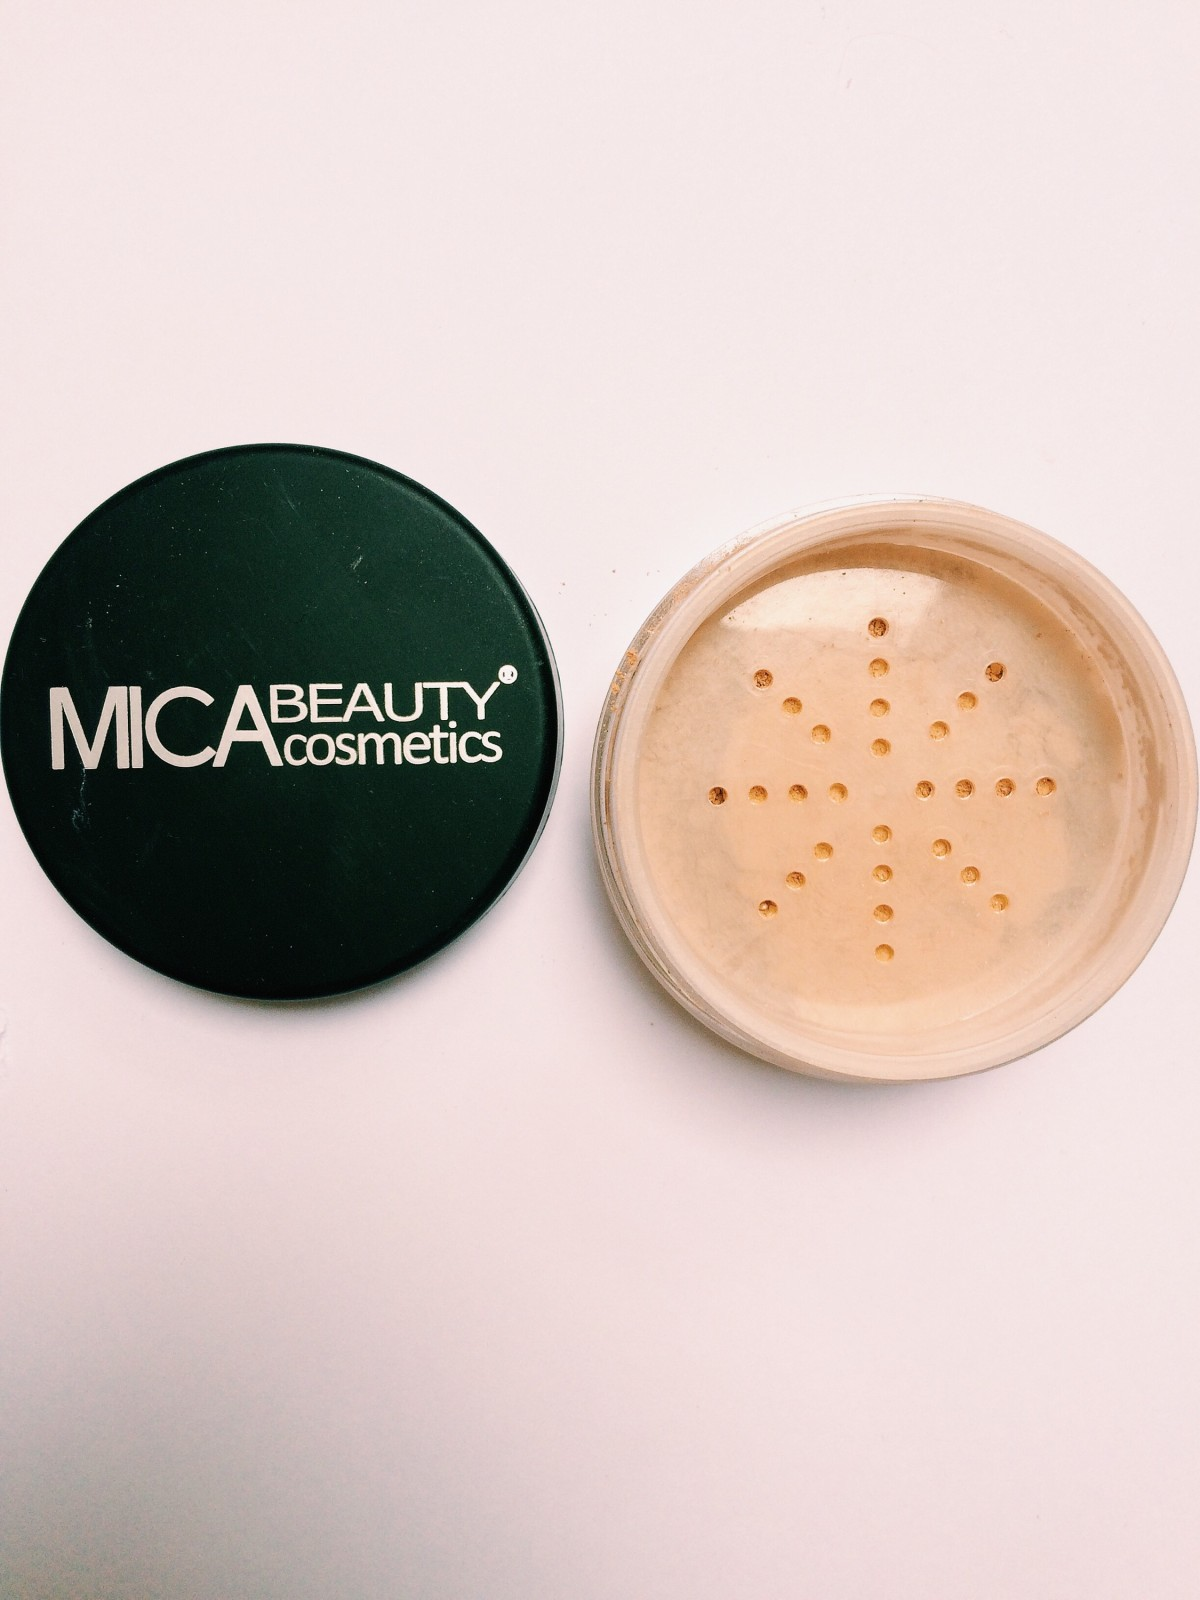 Mica Beauty mineral foundation